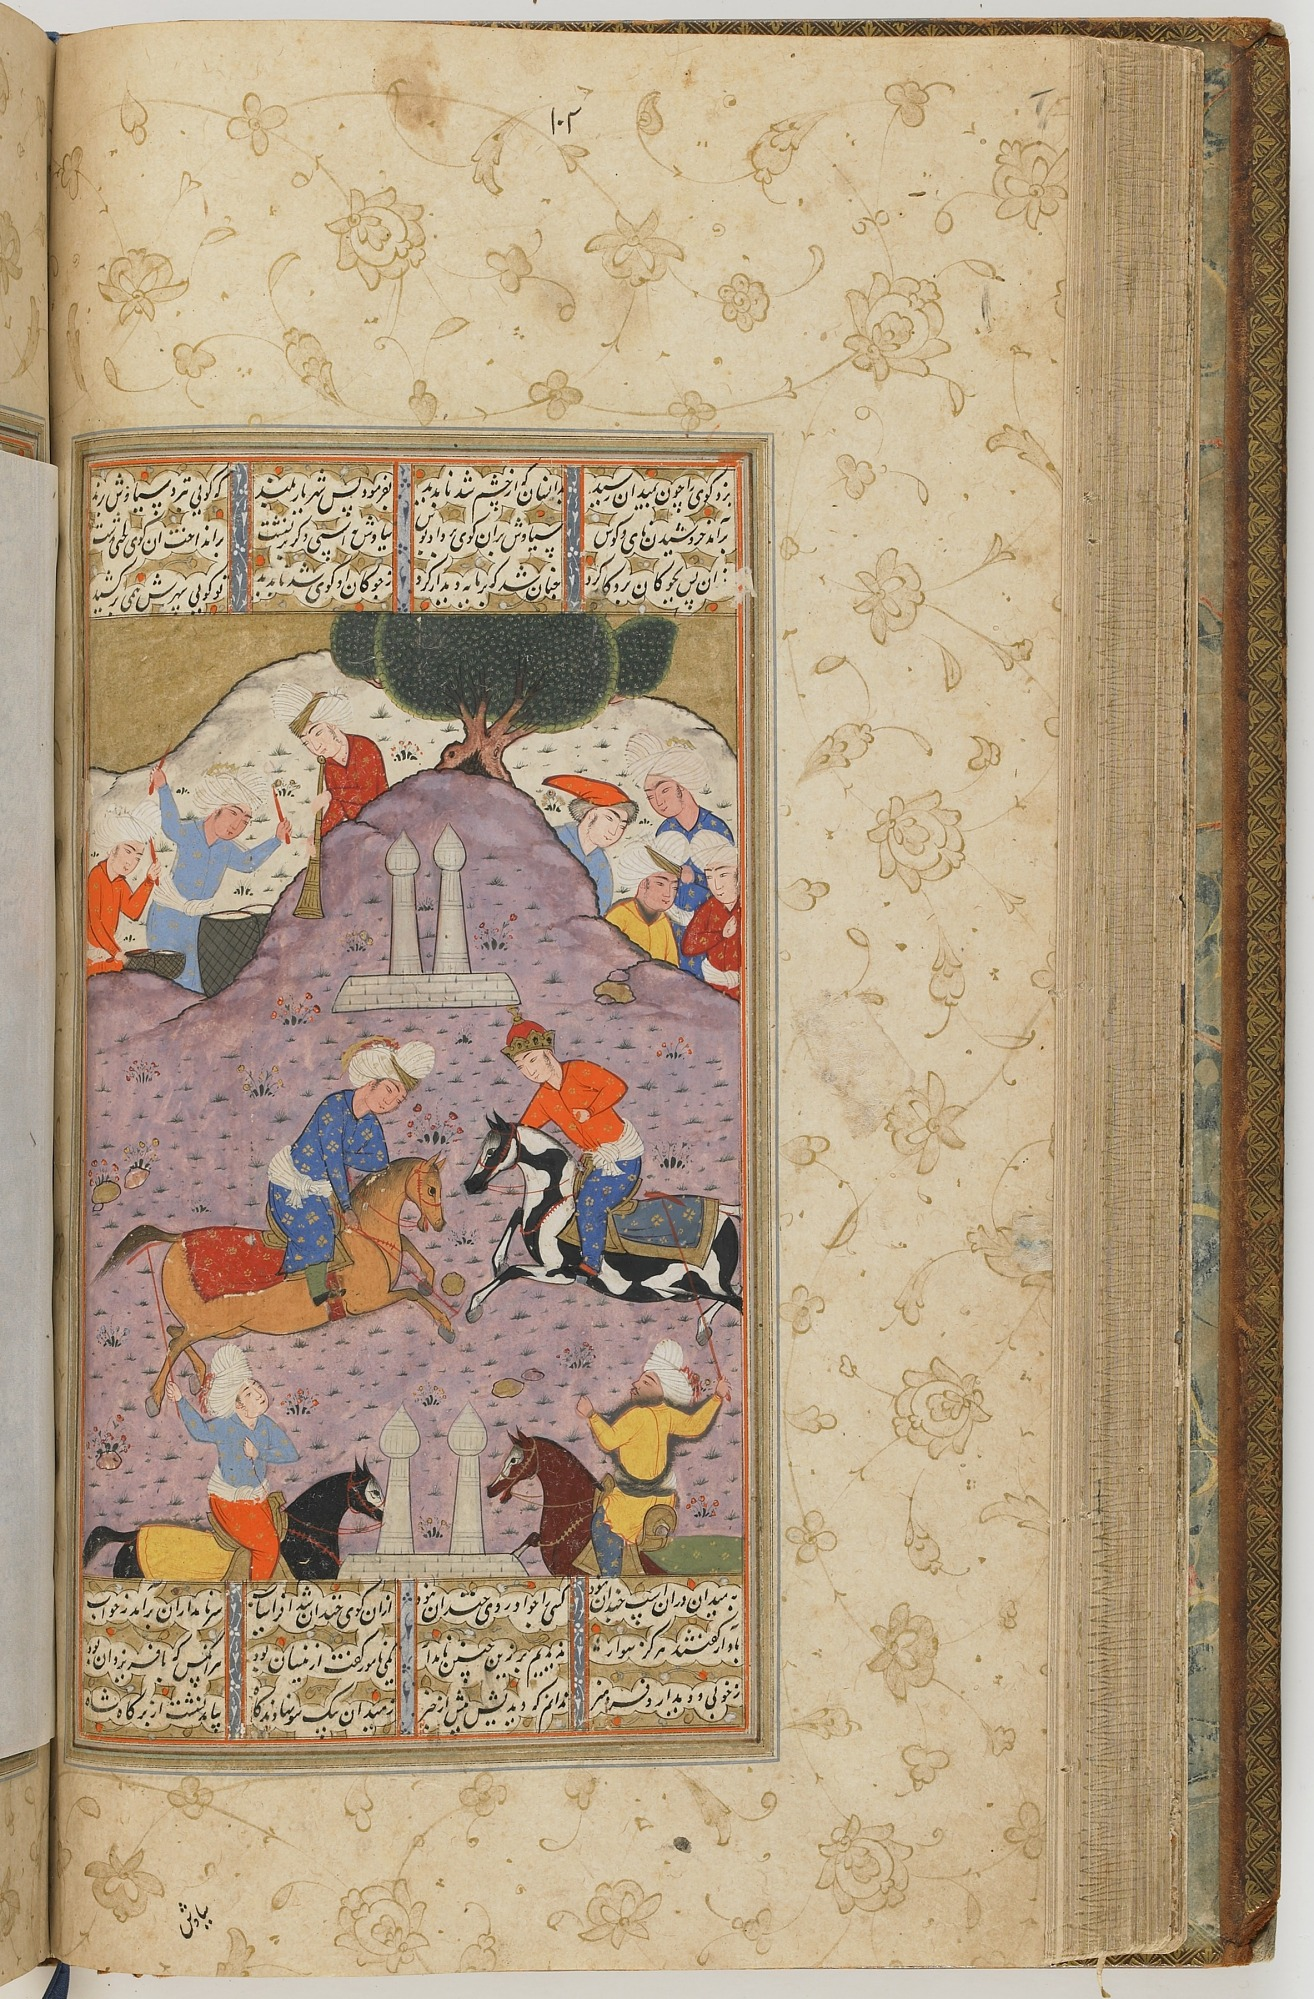 folio 103 verso: The Shahnama (Book of kings) by Firdausi (d. 1020)